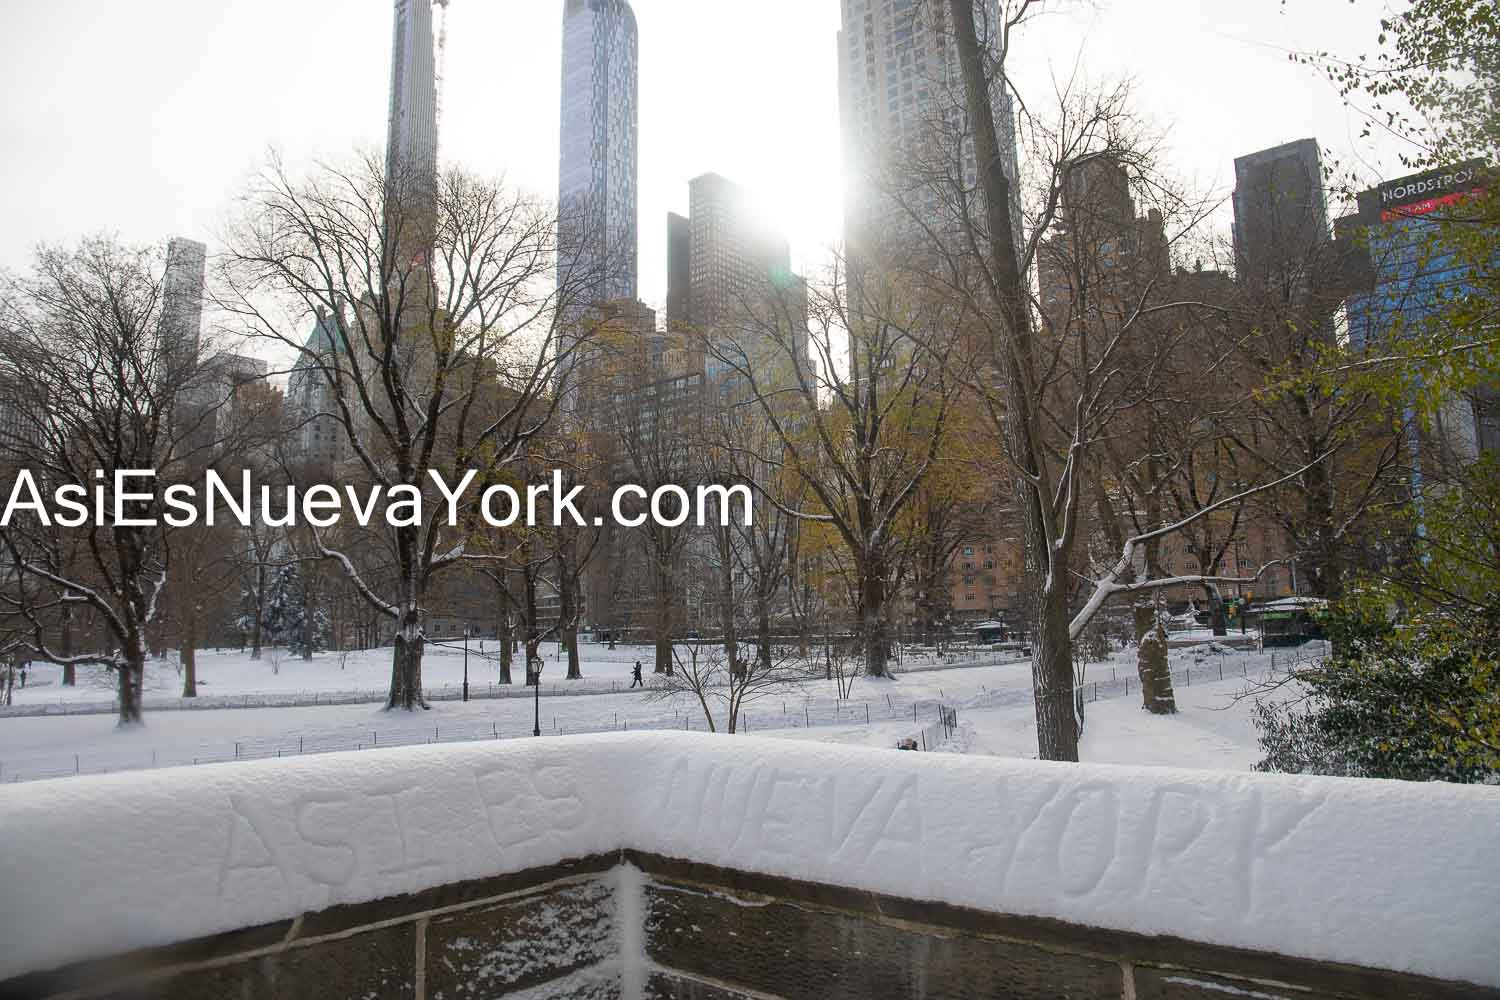 Thursday, December 17, 2020. Manhattan, New York City – Winter storm Gail in Central Park. Photo by Javier Soriano/www.JavierSoriano.com